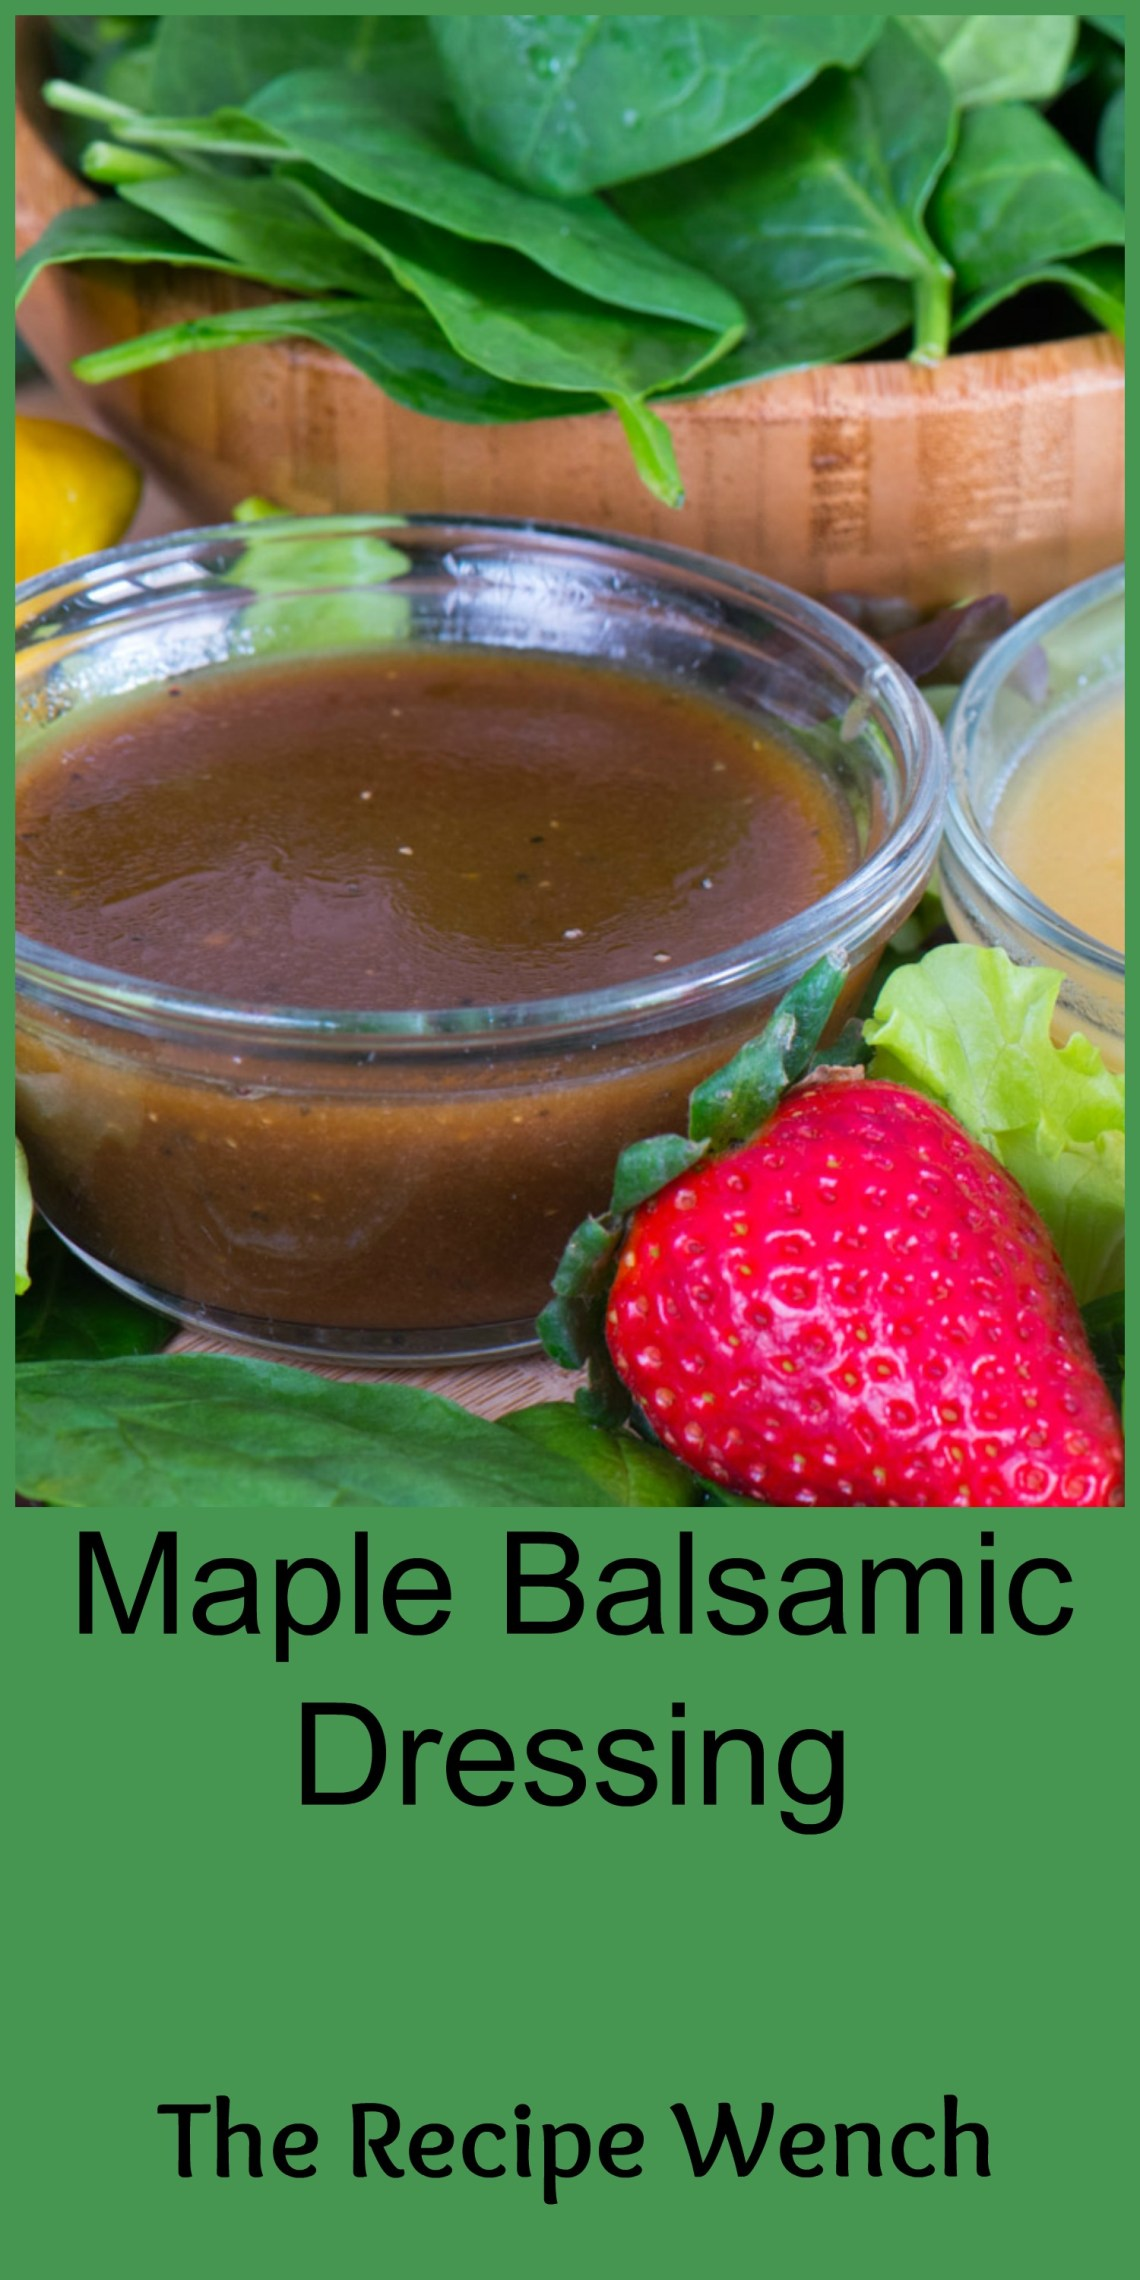 Maple balsamic dressing takes 4 ingredients and 5 minutes. Why buy?   The Recipe Wench